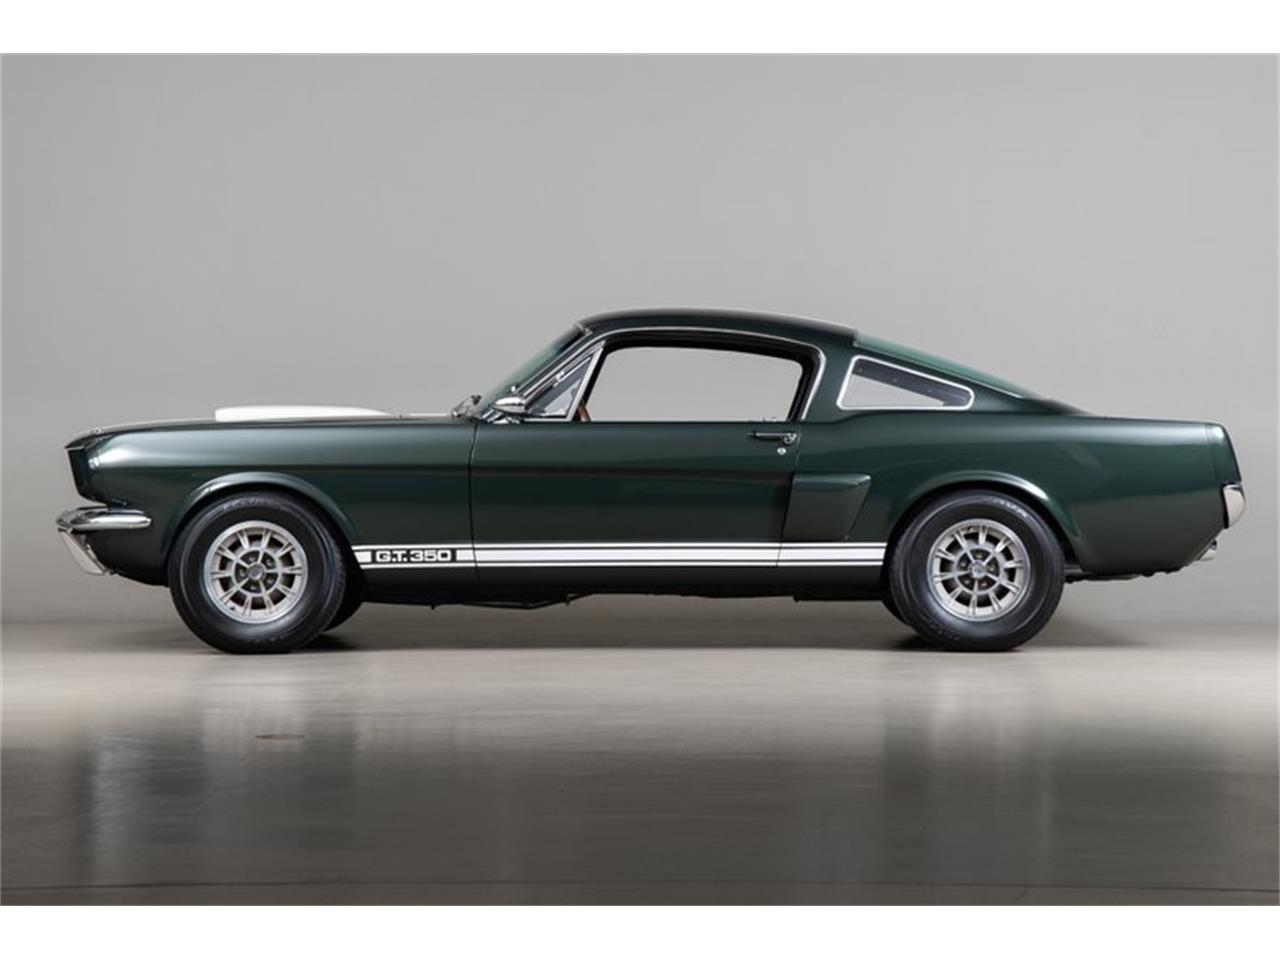 Large Picture of 1966 Shelby GT350 located in Scotts Valley California Auction Vehicle Offered by Canepa - QKPF